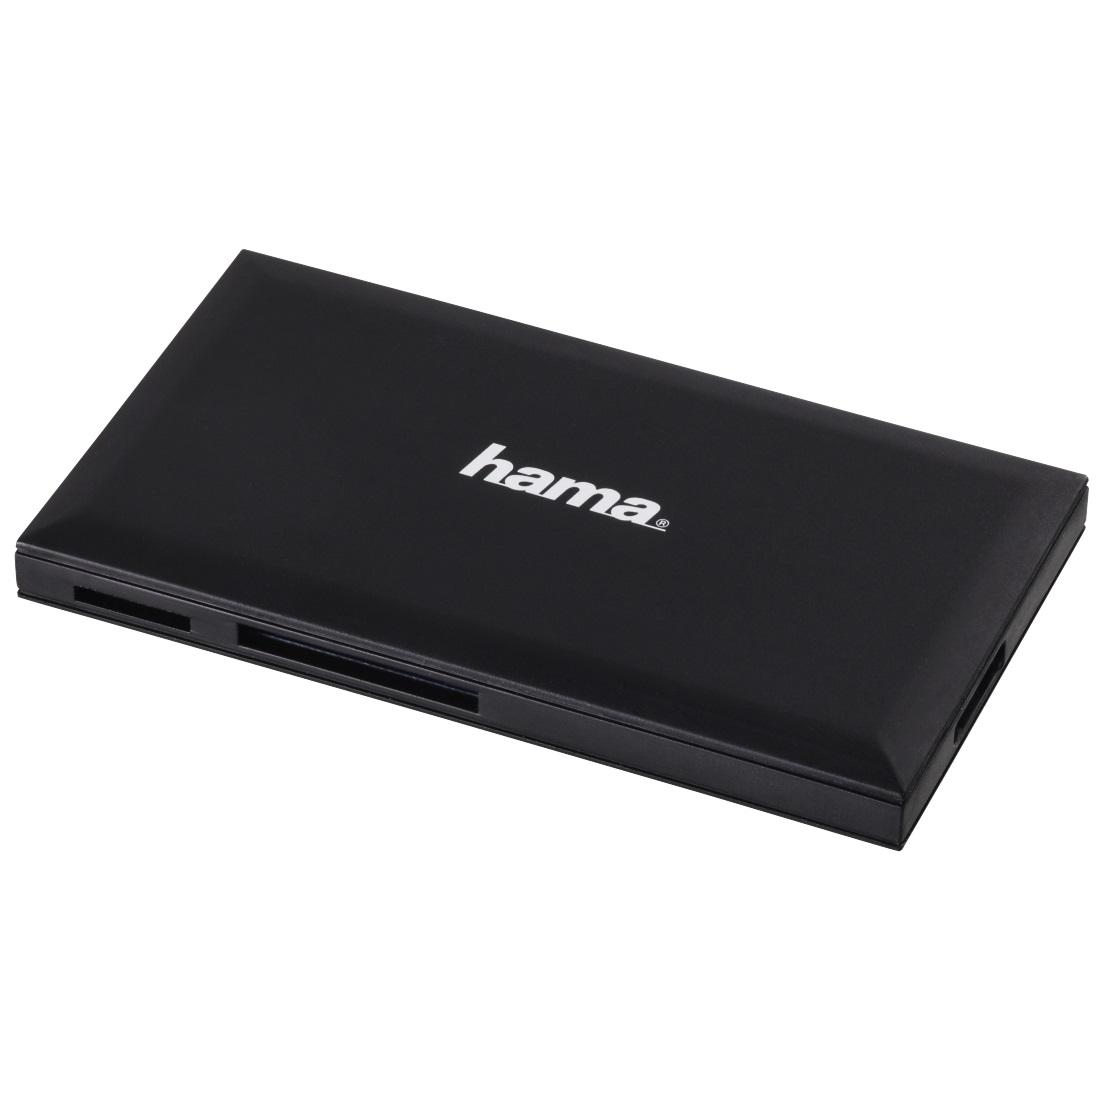 Четец за карти HAMA Multi-Card Reader, USB 3.0, SD/microSD/CF/MS, 5 Gbps, Черен